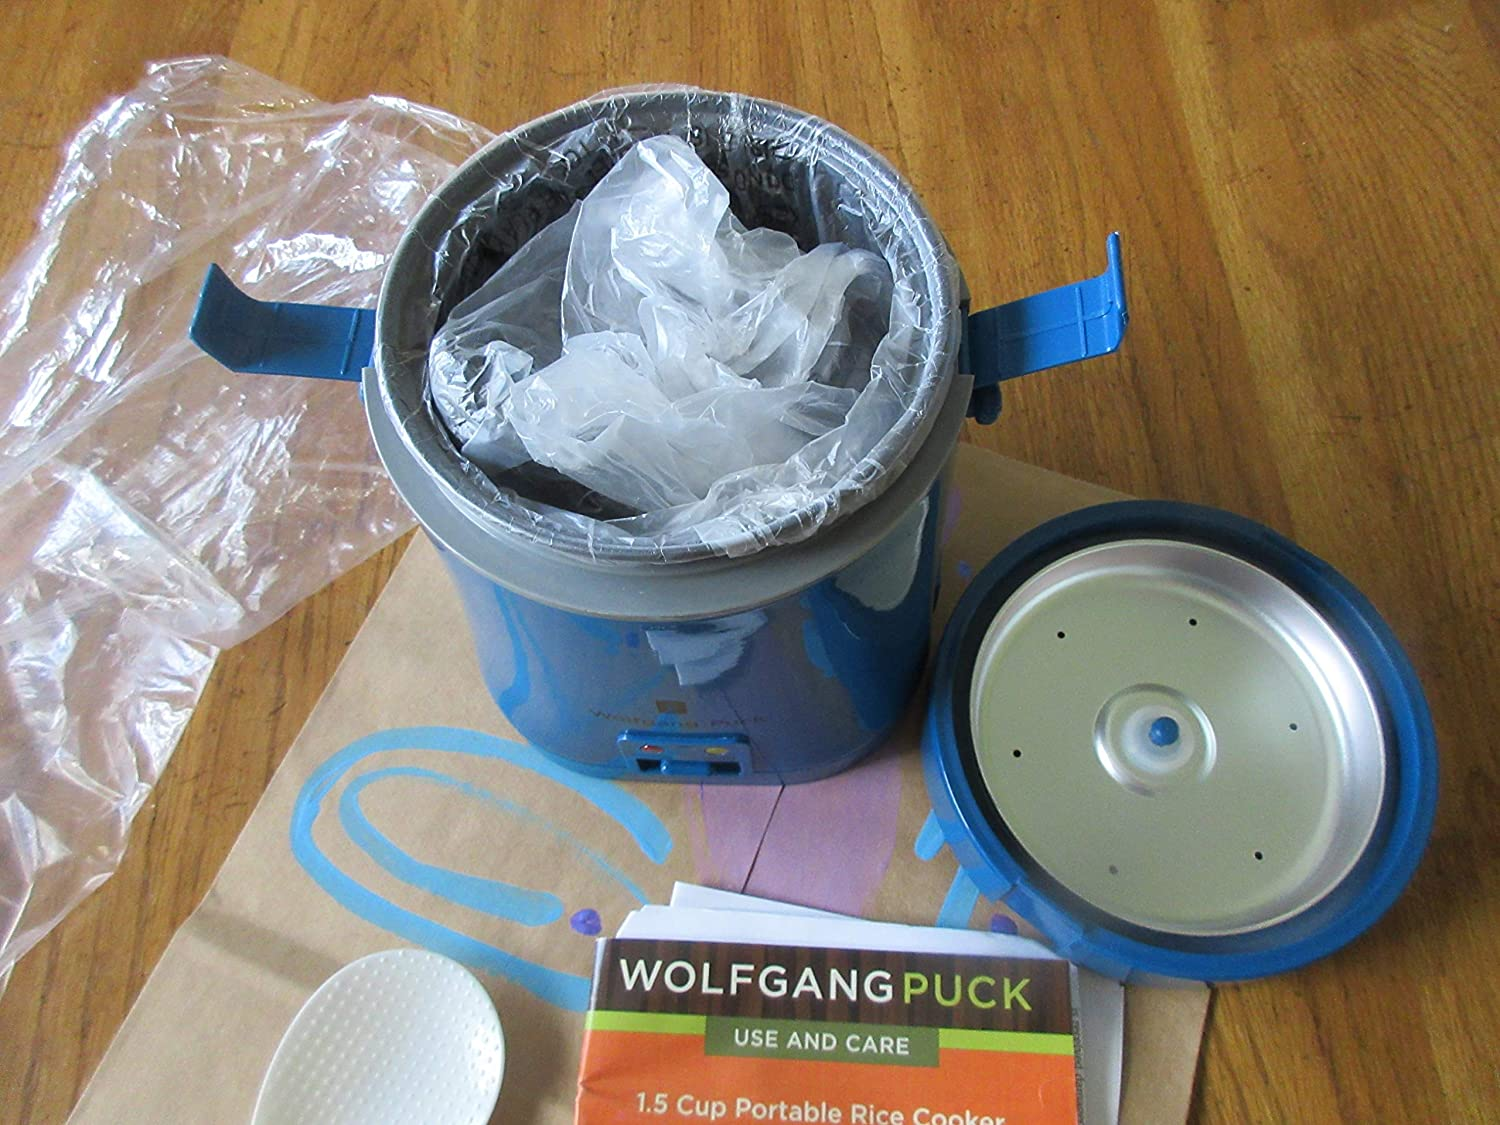 New Blue Wolfgang Puck 1.5 Cup Portable Cooker with Egg Cooker Insert Rice